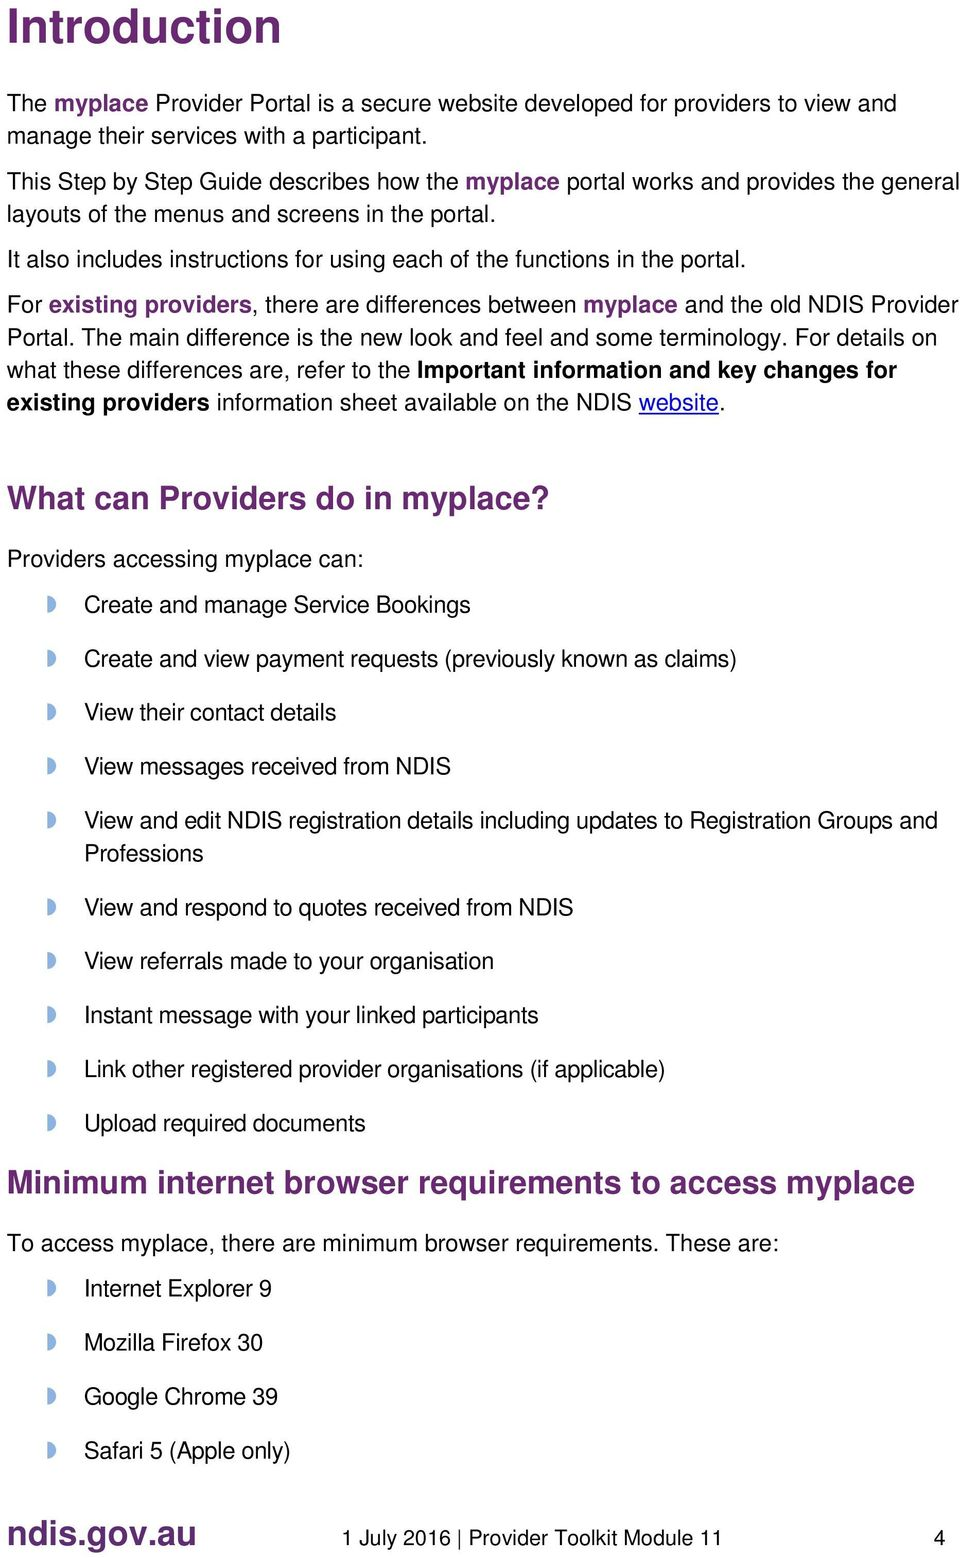 It also includes instructions for using each of the functions in the portal. For existing providers, there are differences between myplace and the old NDIS Provider Portal.